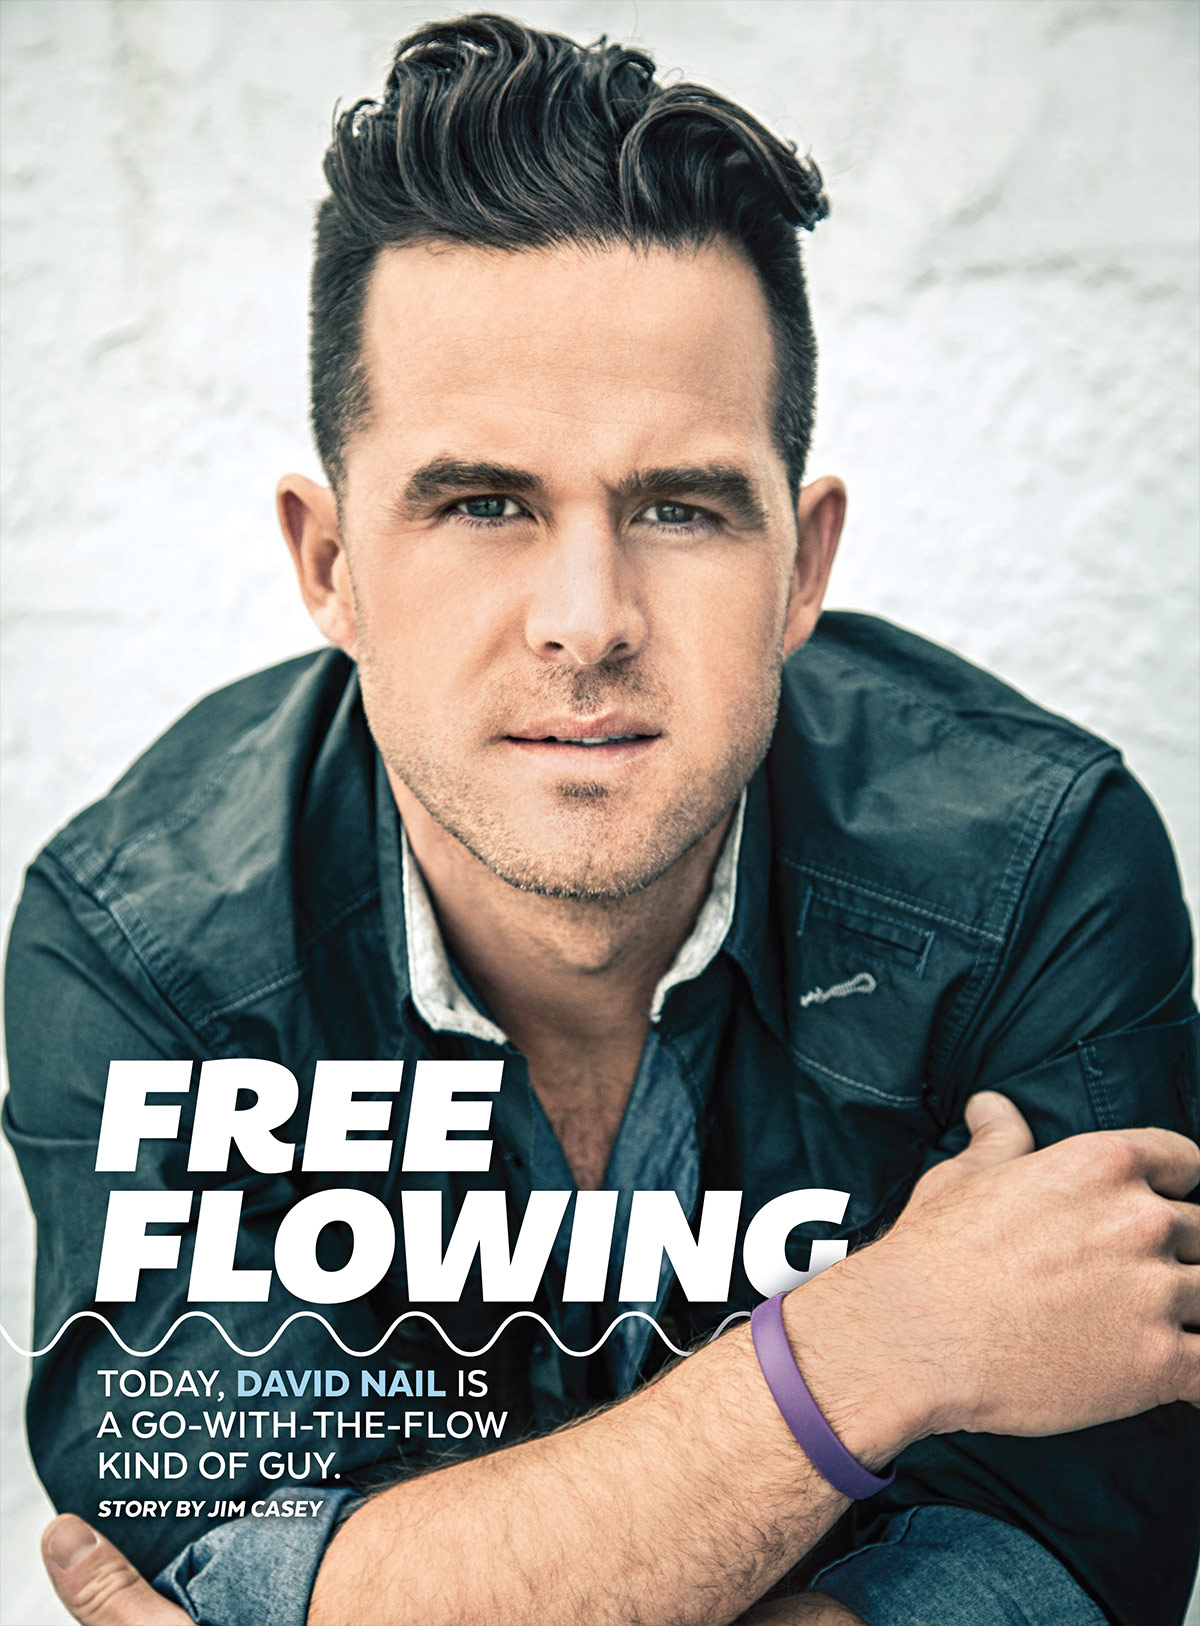 David Nail is a Go-With-the-Flow Kind of Guy